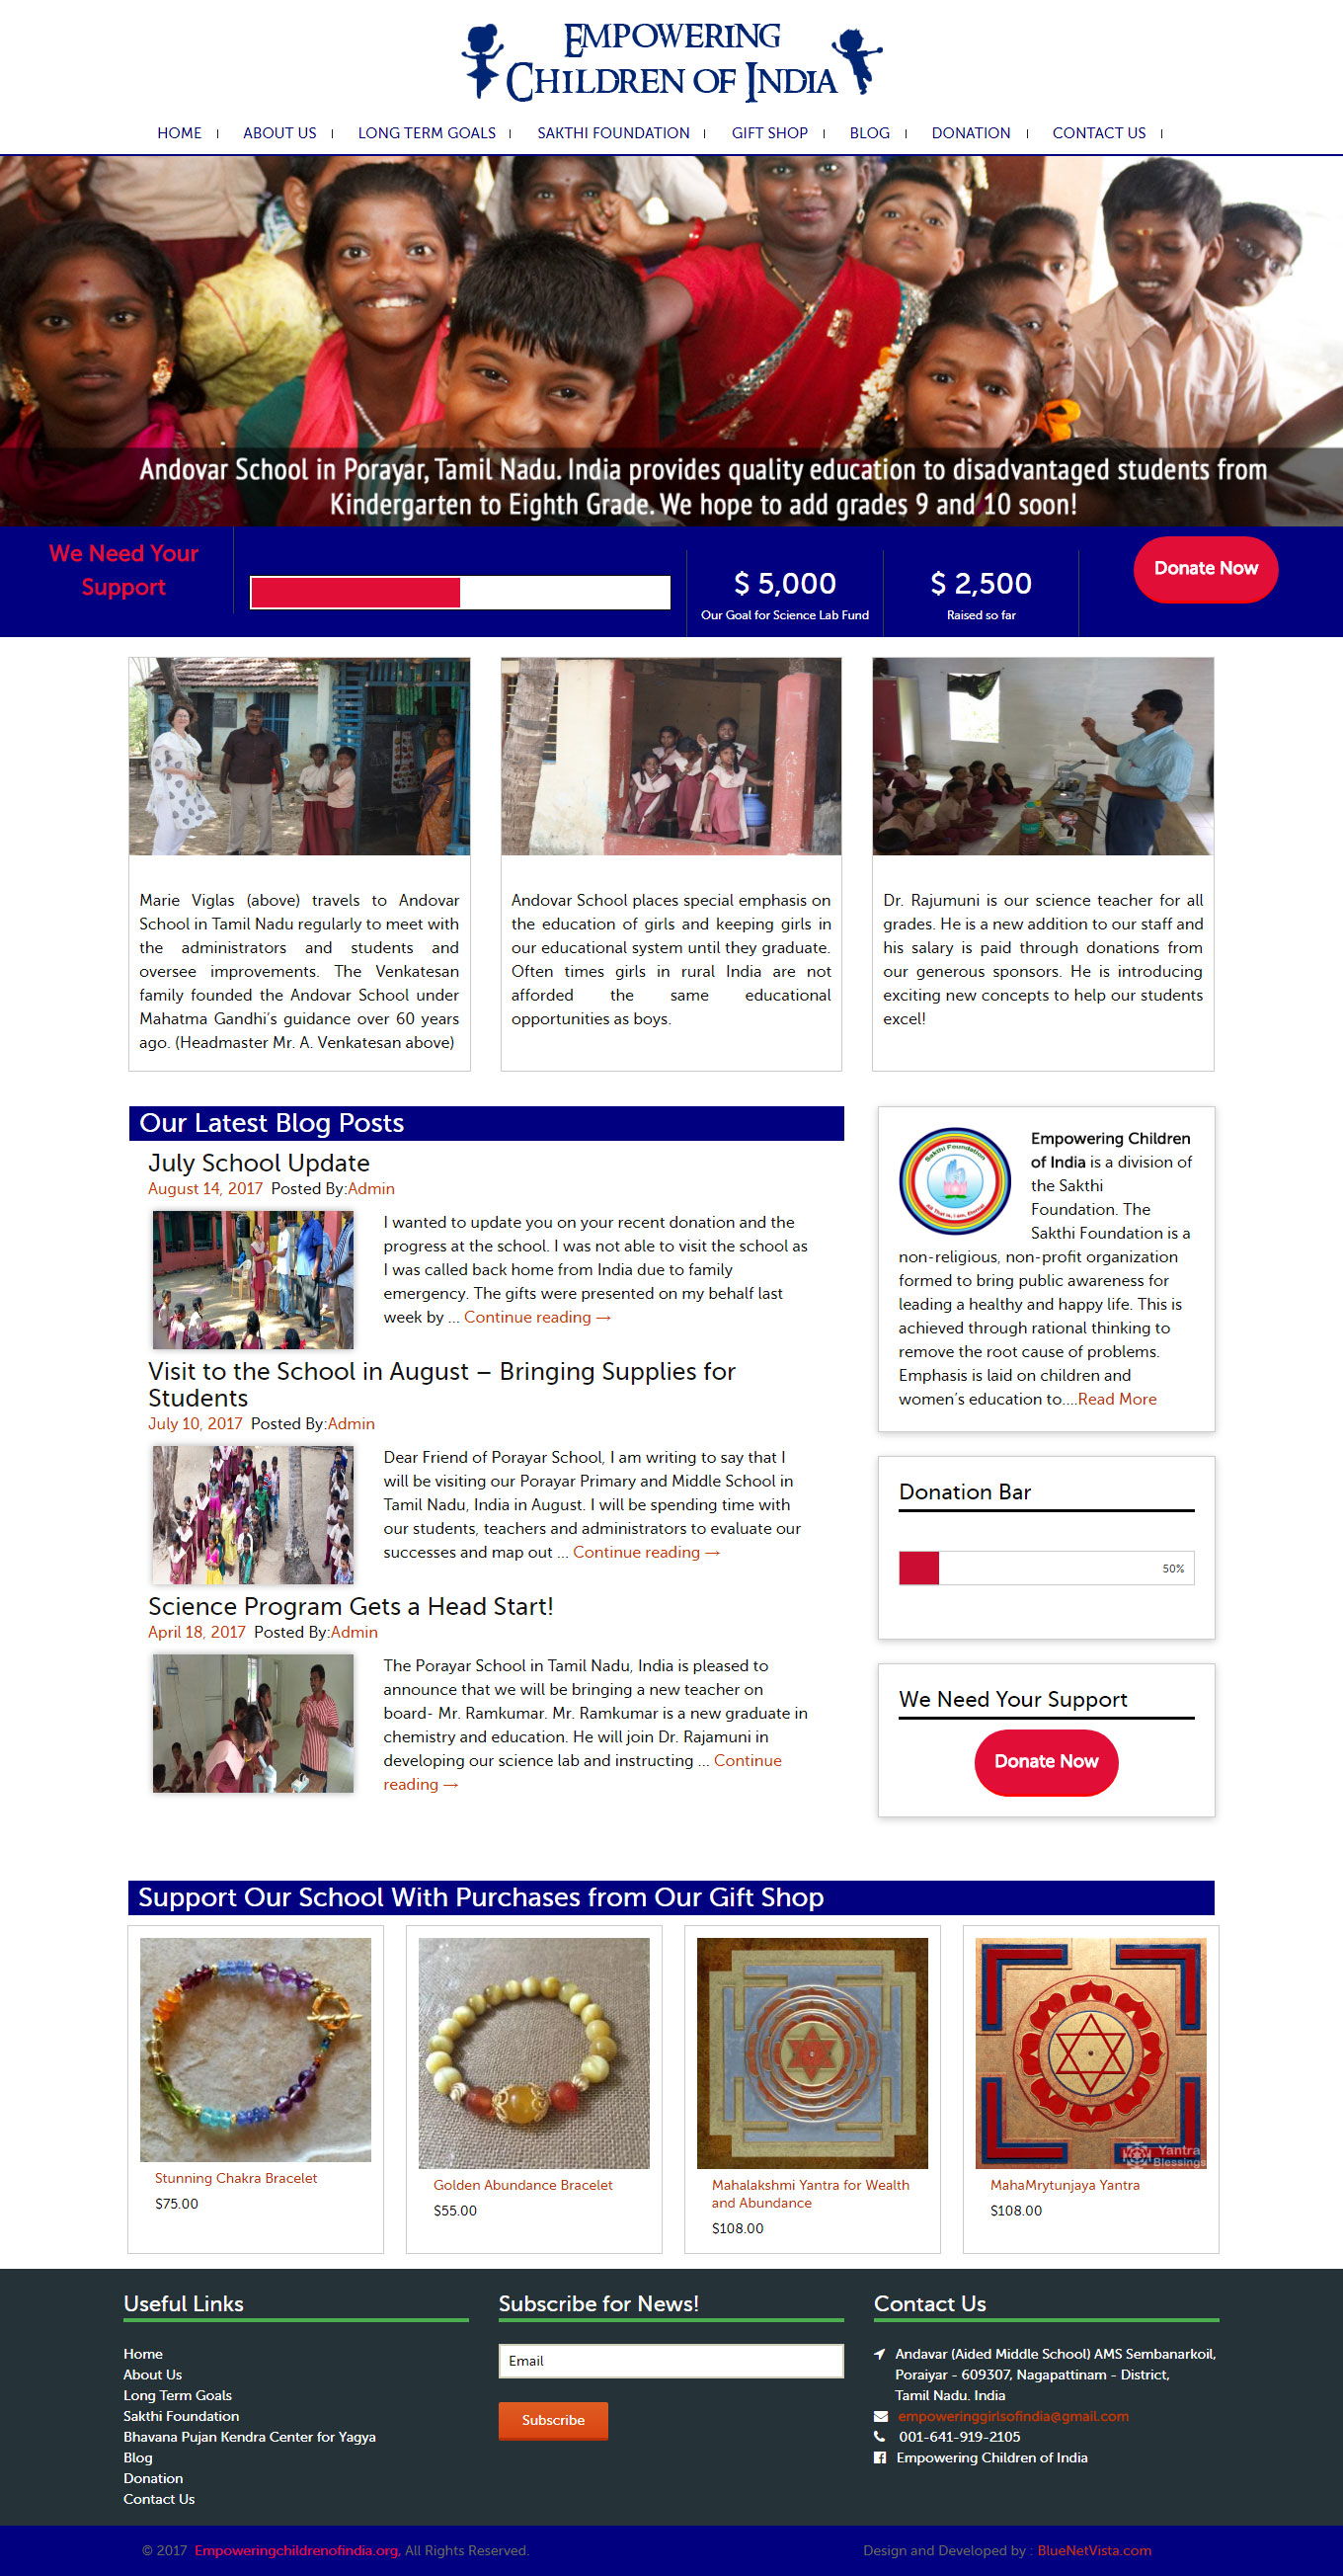 empowerment of girl child is empowering 10 websites we love that are helping empower girls through the use of empowerment these child-friendly sheheroes empowers 10 - 14 year-old girls and boys.